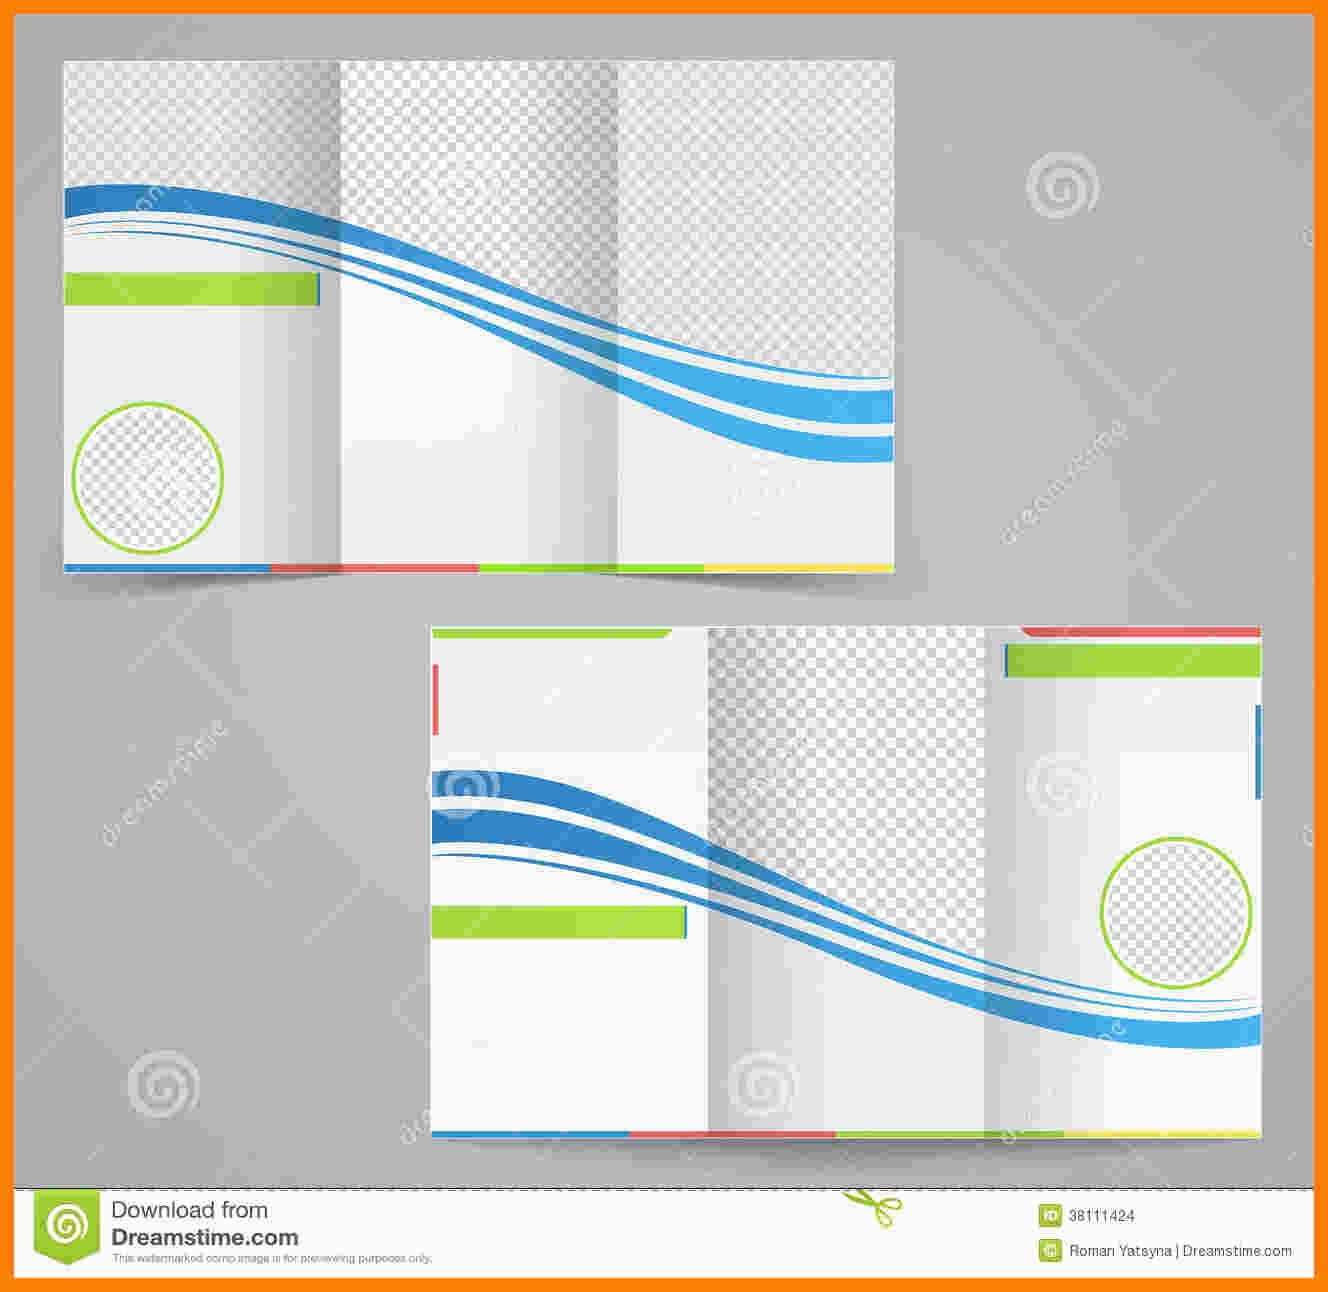 Free Tri Fold Brochure Templates Microsoft Word Download Throughout Free Tri Fold Brochure Templates Microsoft Word